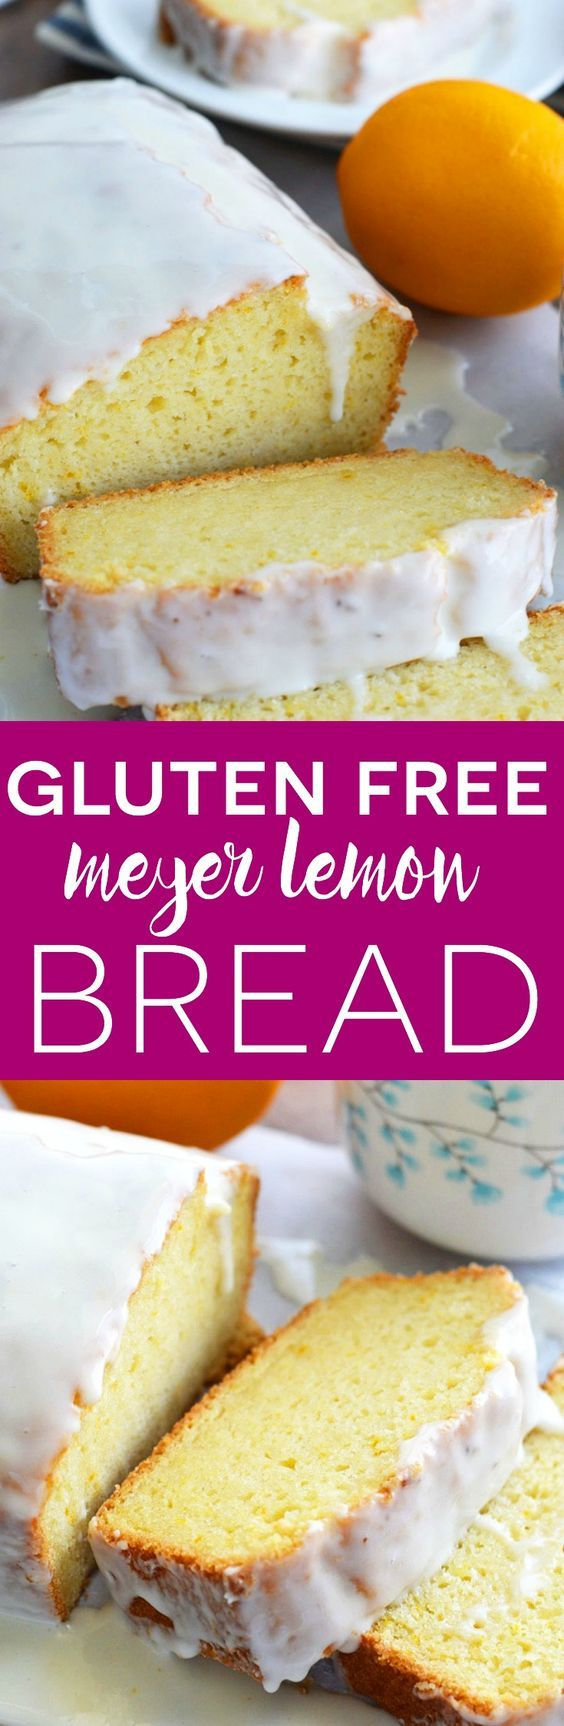 Gluten Free Meyer Lemon Bread (and dairy free) from What The Fork Food Blog | whattheforkfoodbl...